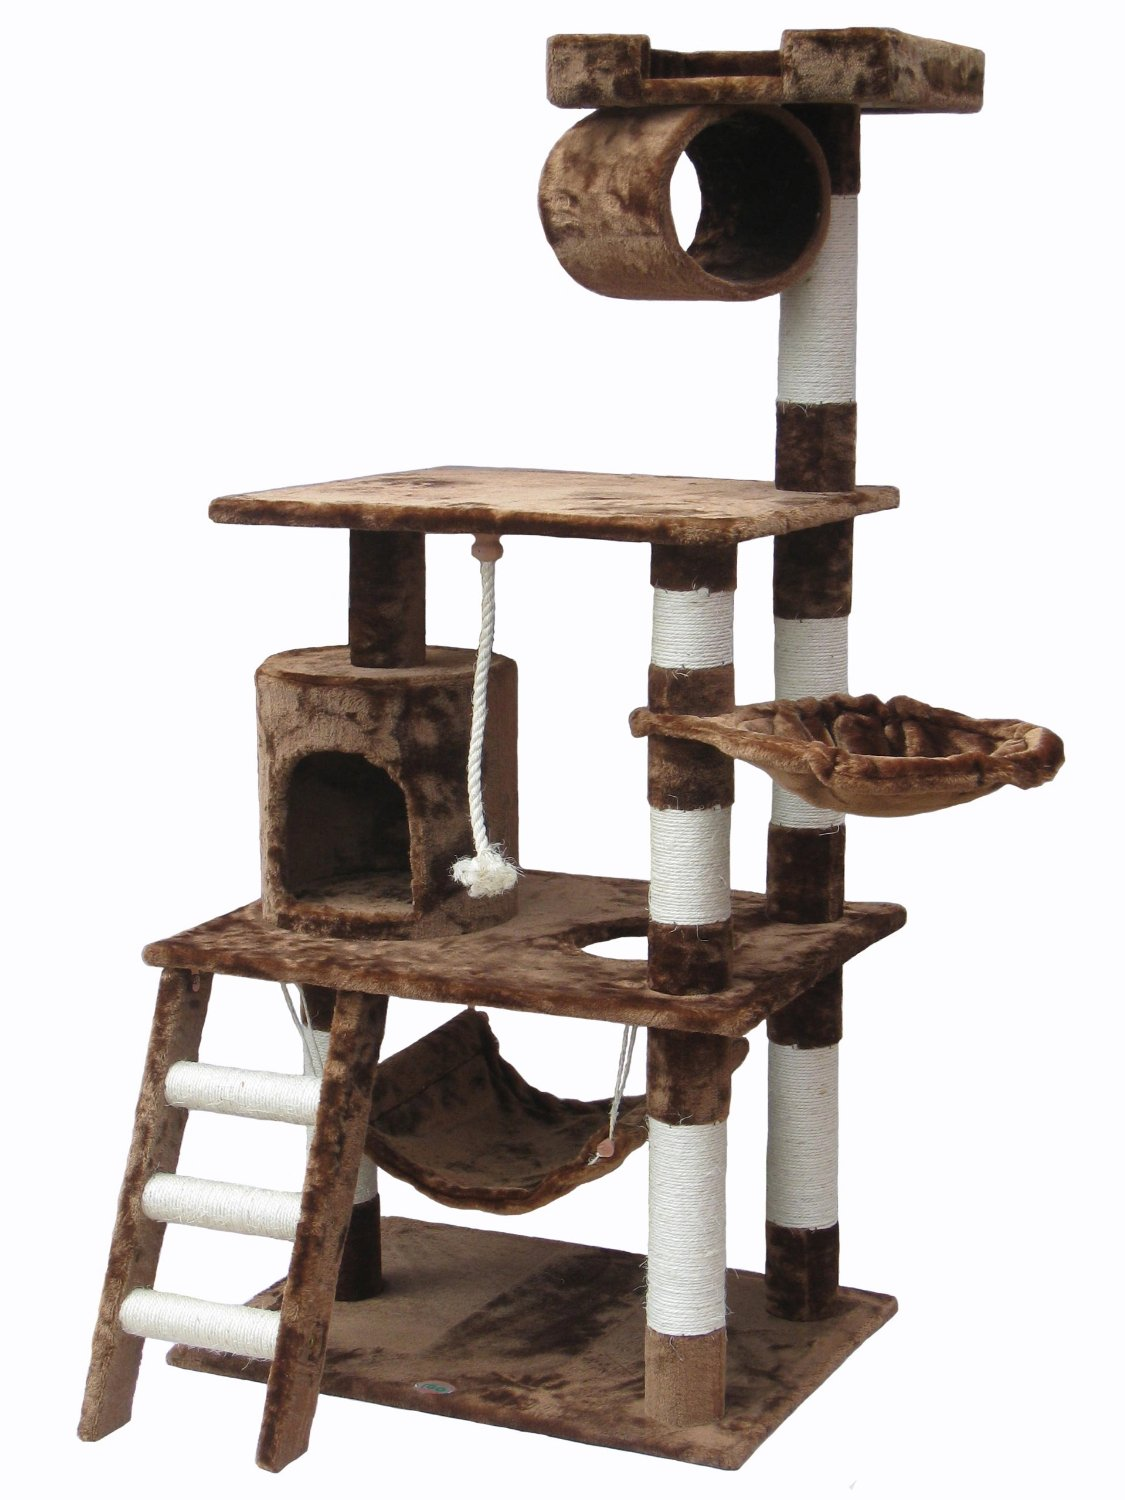 Go Pet Club's F67 Cat Climbing Tree with Hammock